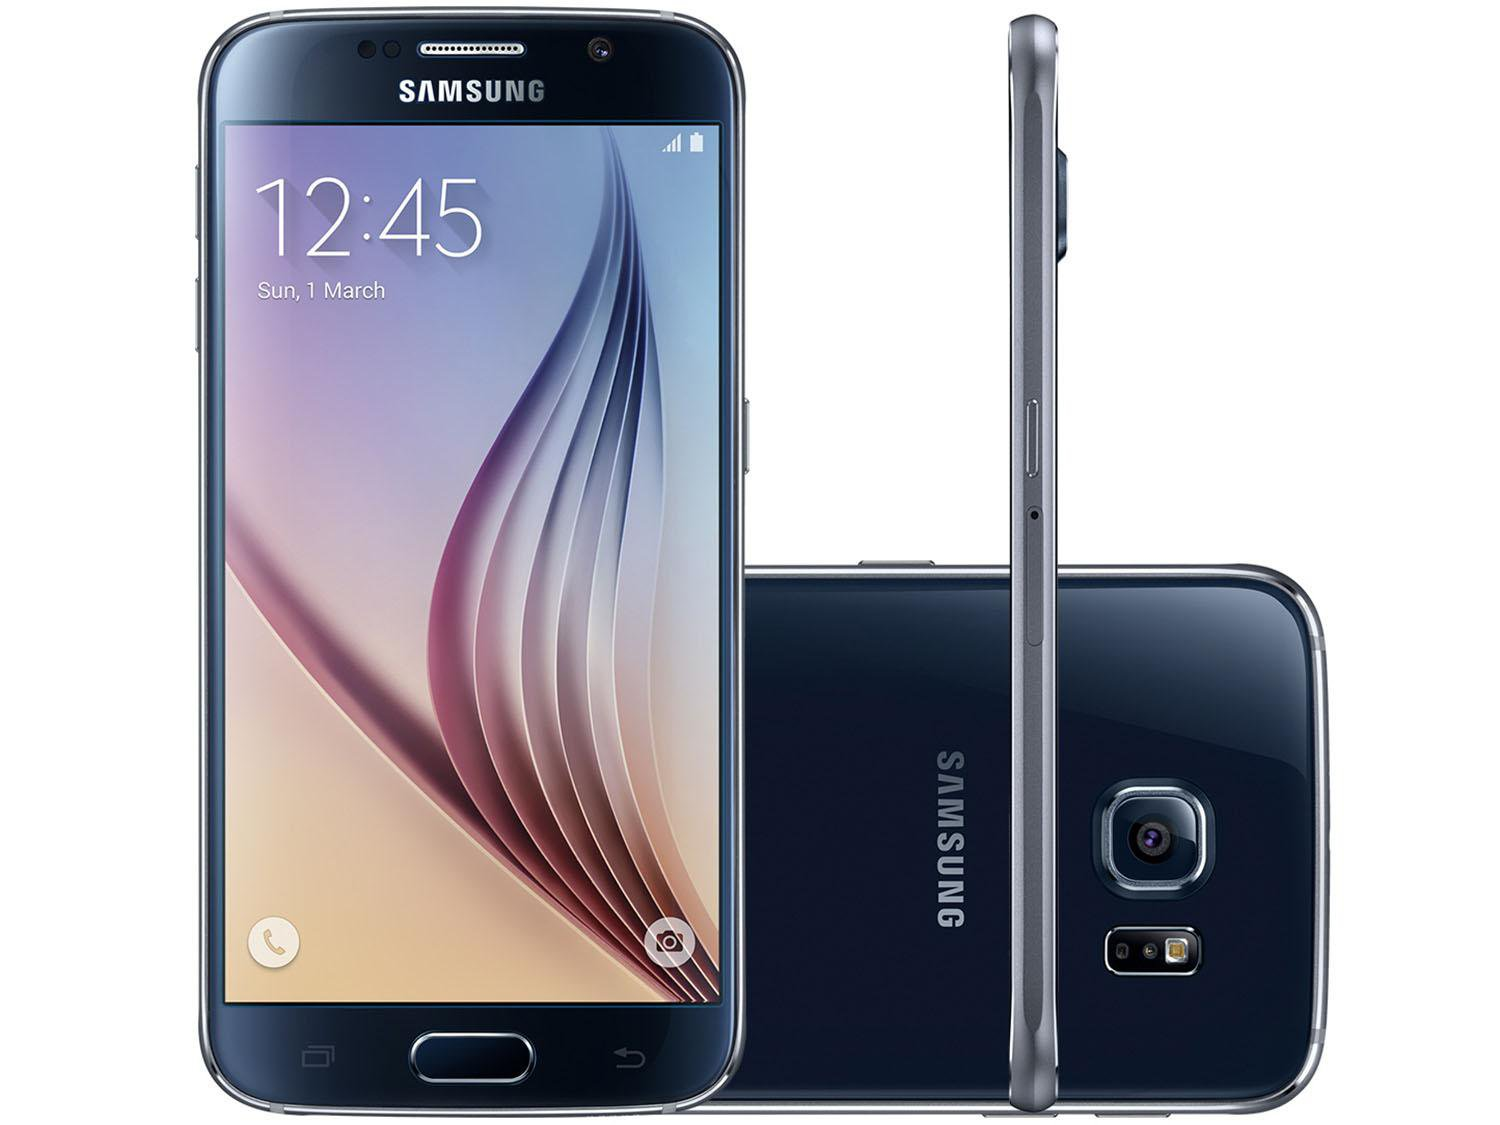 smartphone-samsung-galaxy-s6-32gb-4g-android-5.0-cam.-16mp-tela-5.1-proc.-octa-core